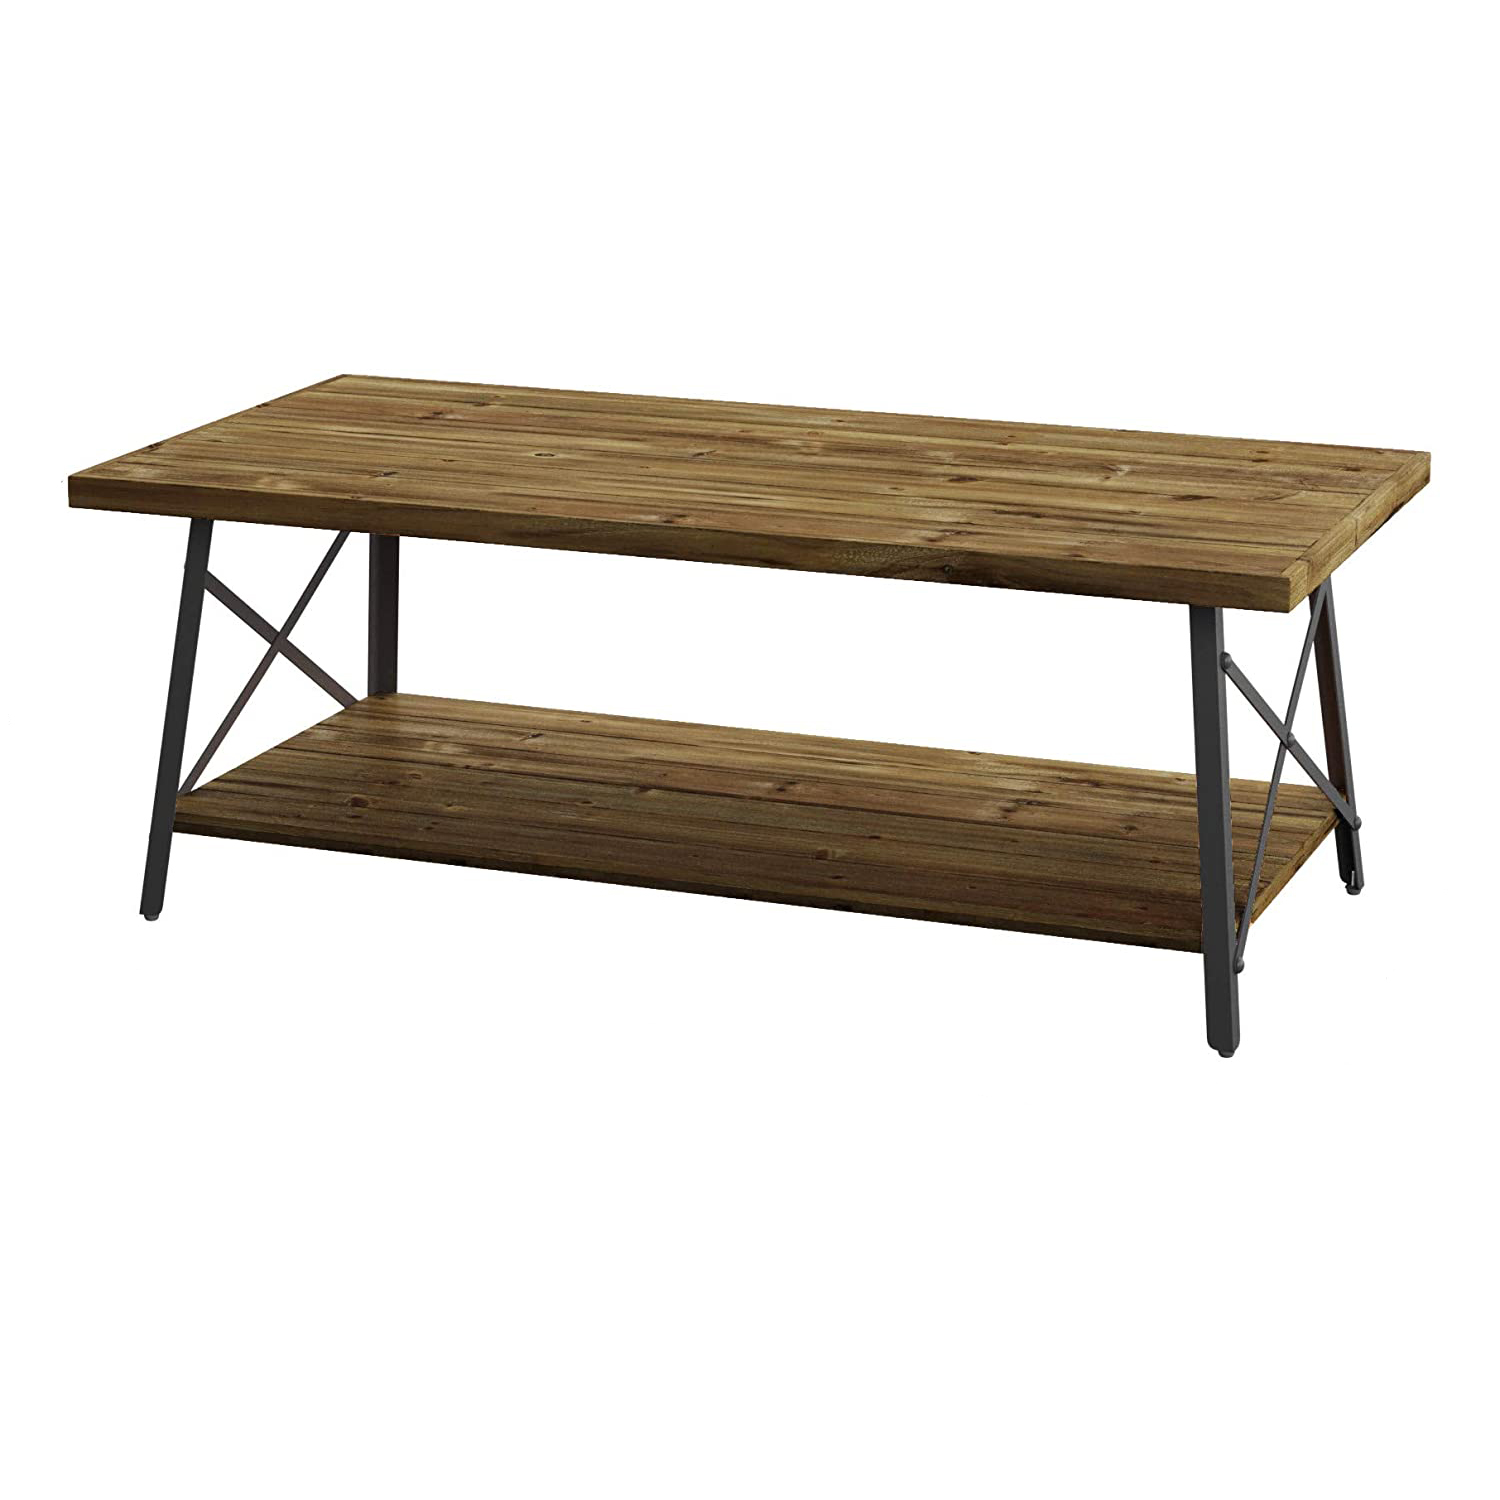 Emerald Home Chandler 45 Inch Long Rustic Open Storage Coffee Table Natural Fir Ebay